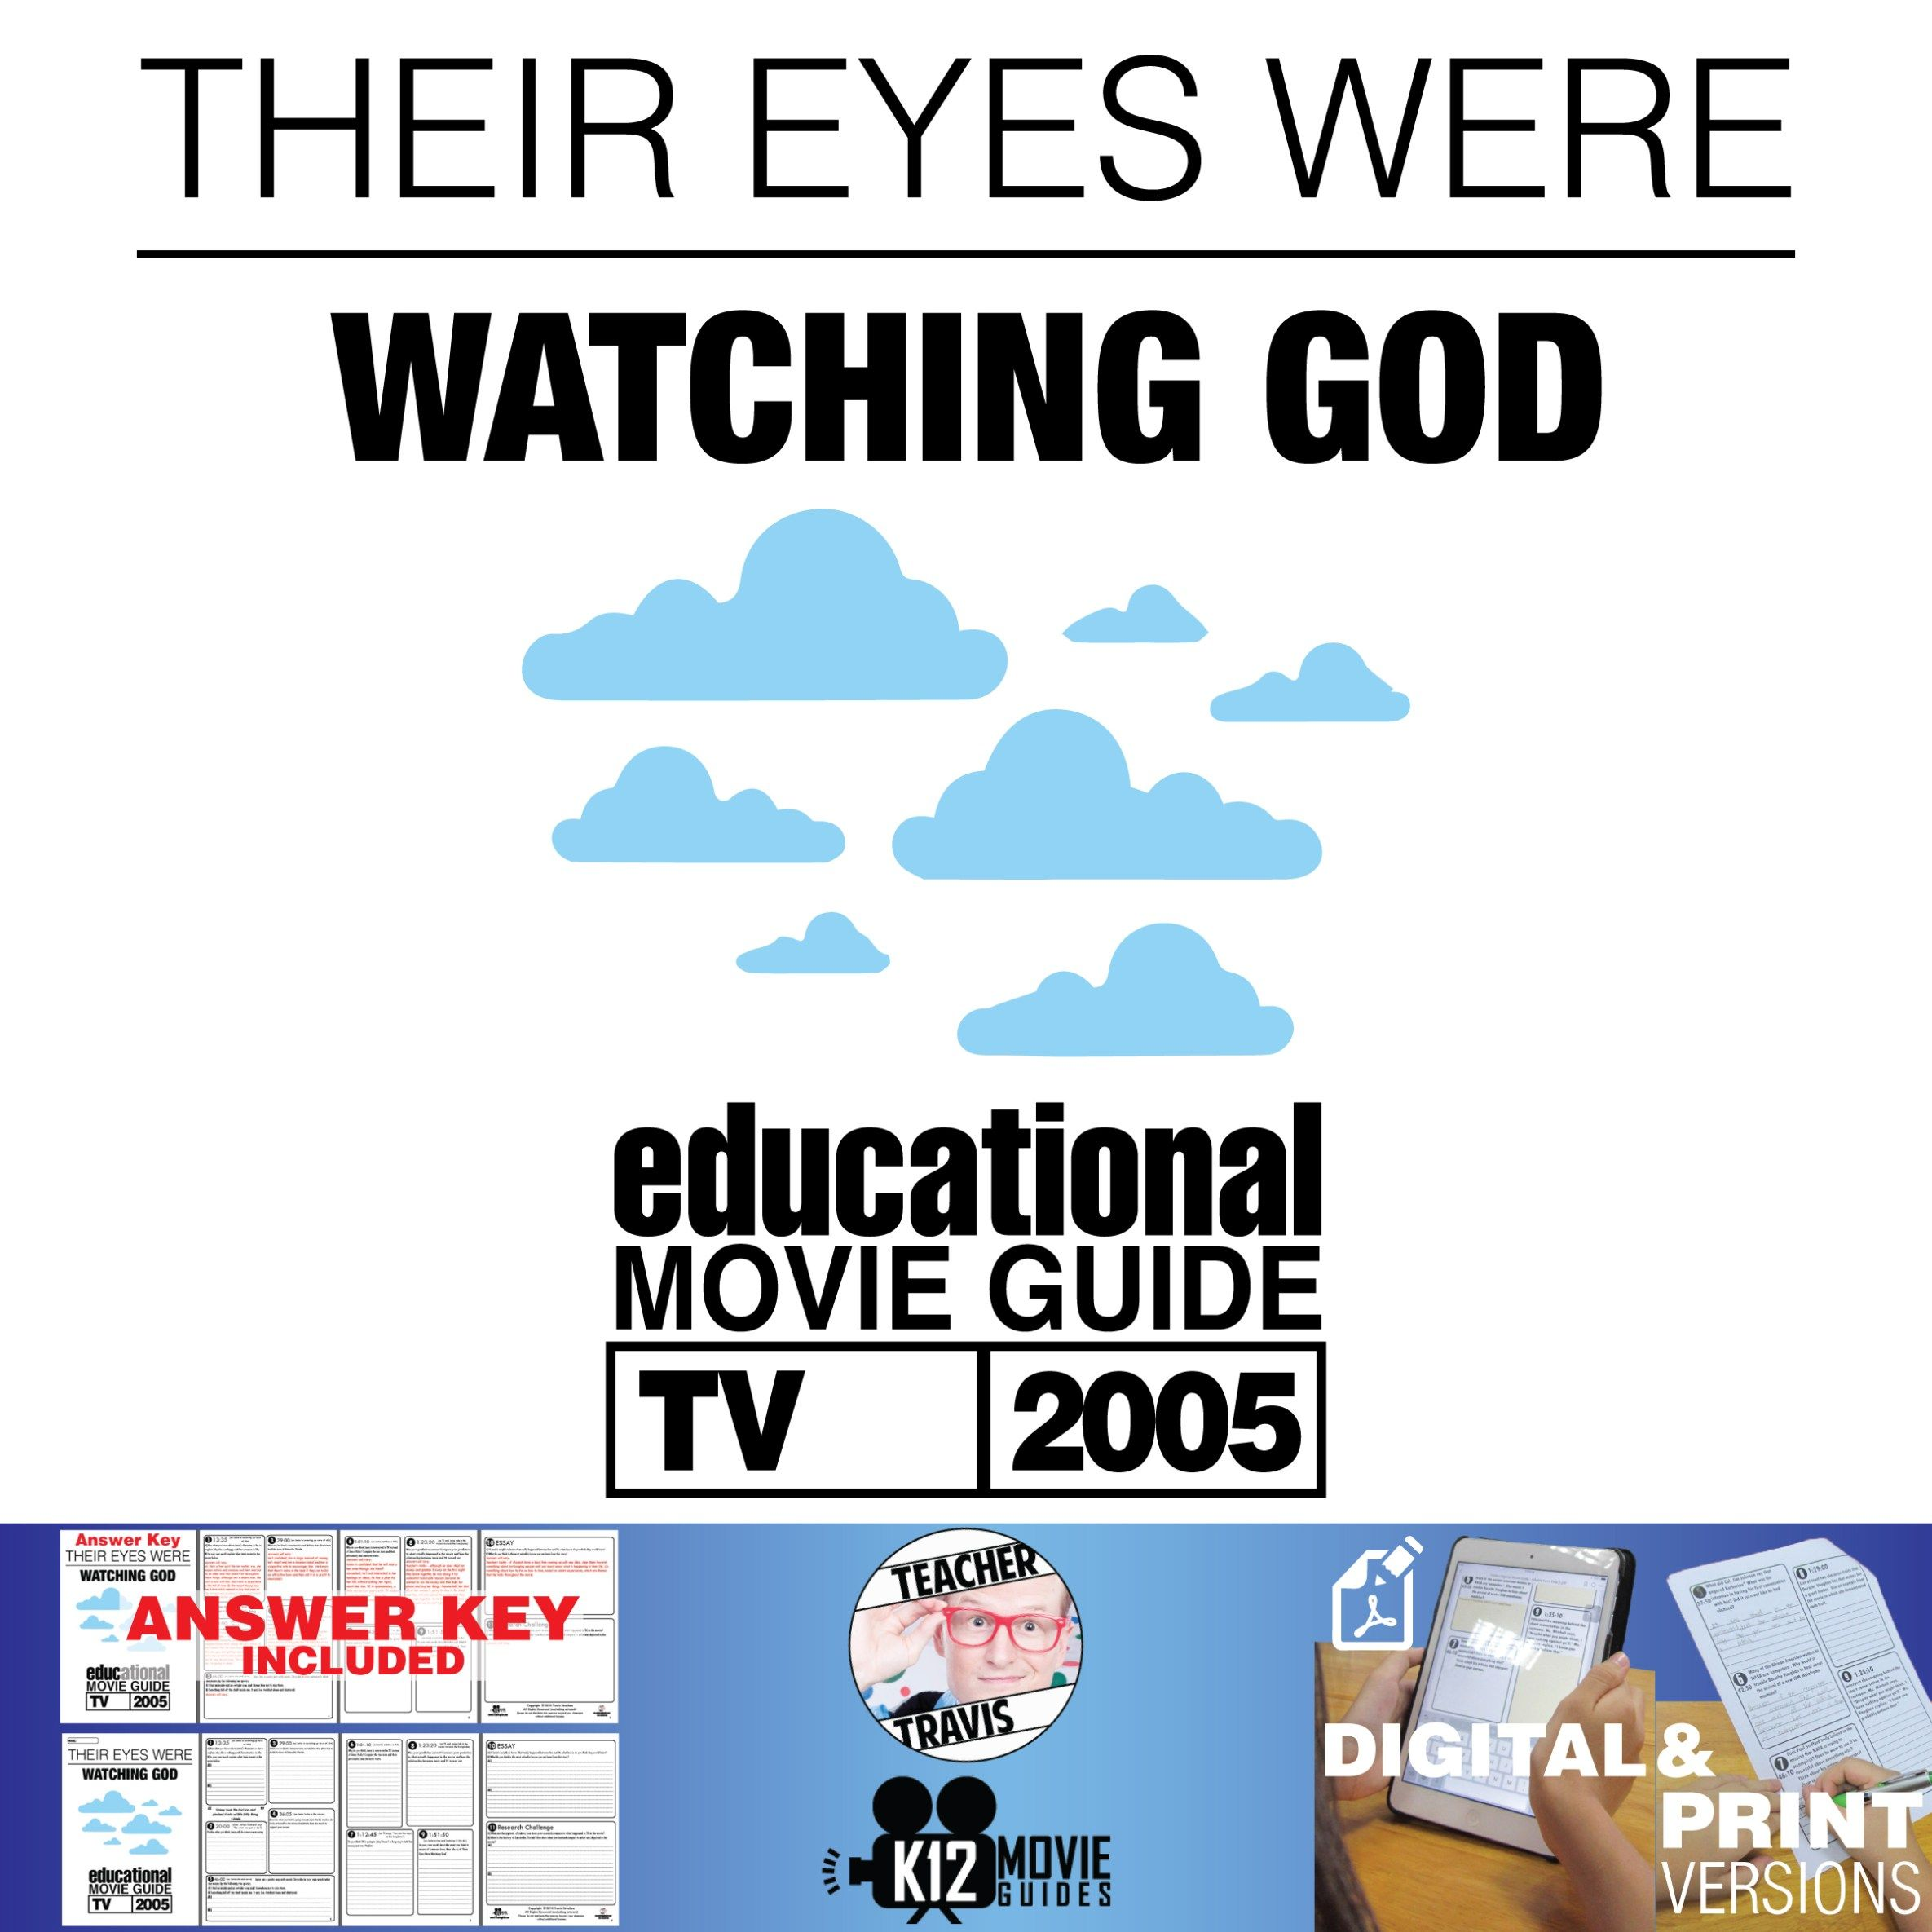 Their Eyes Were Watching God Movie Guide